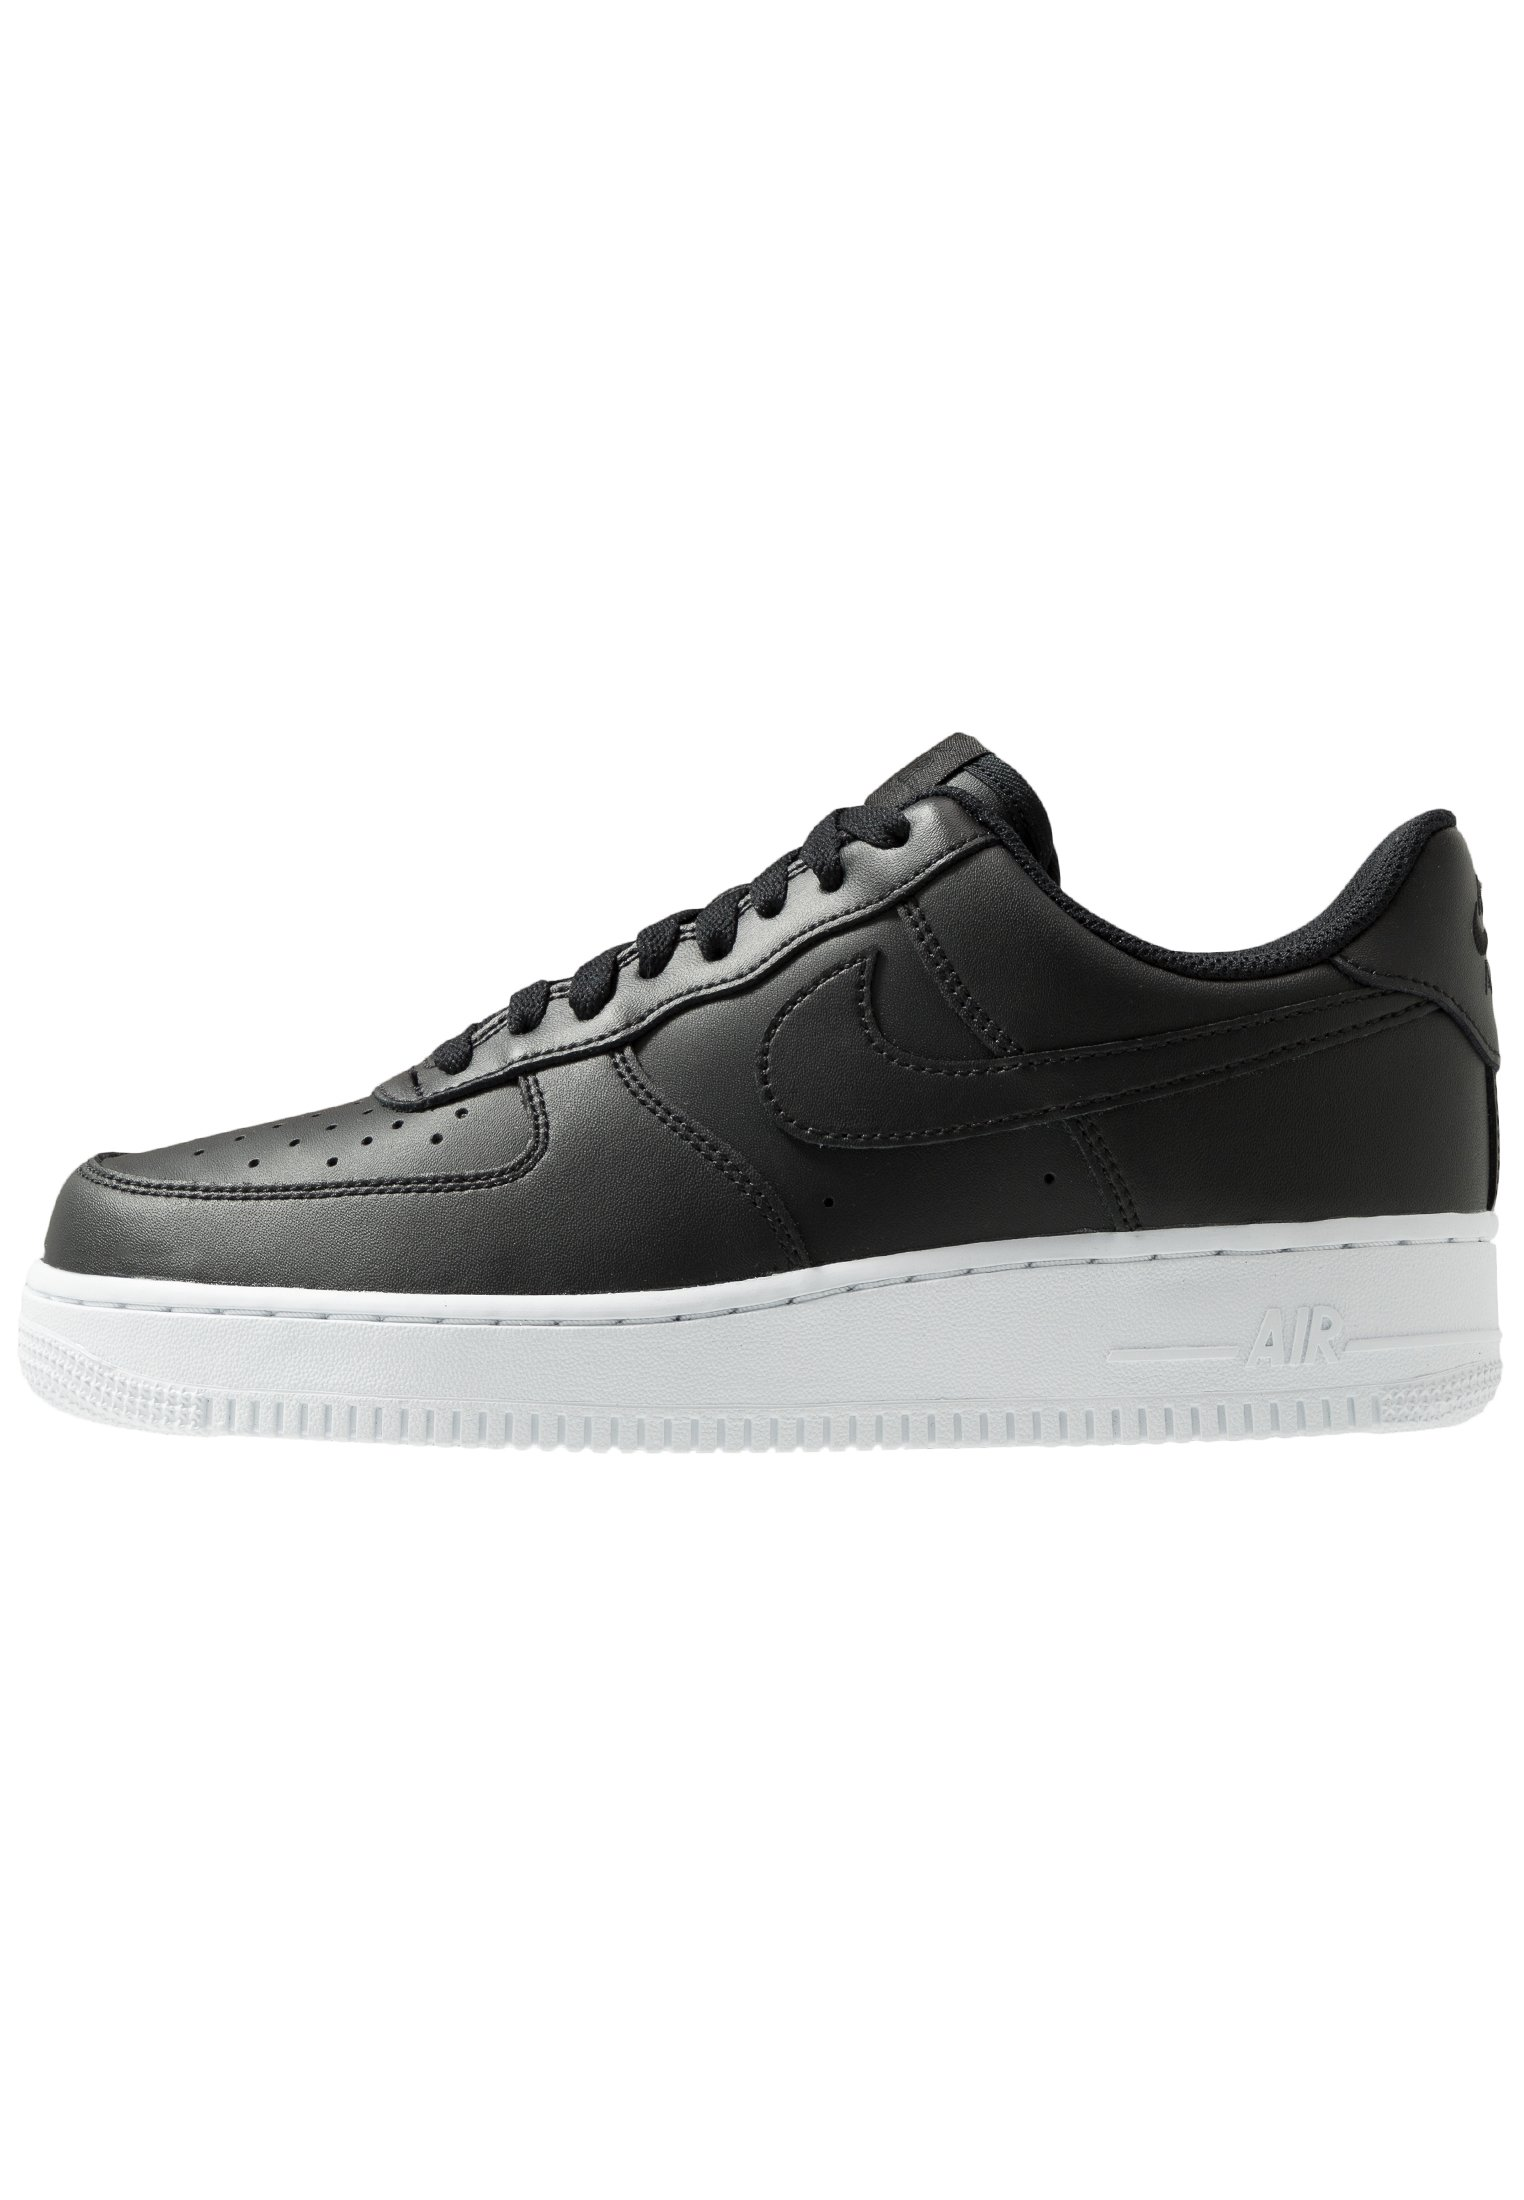 nike air force low white 353380-618